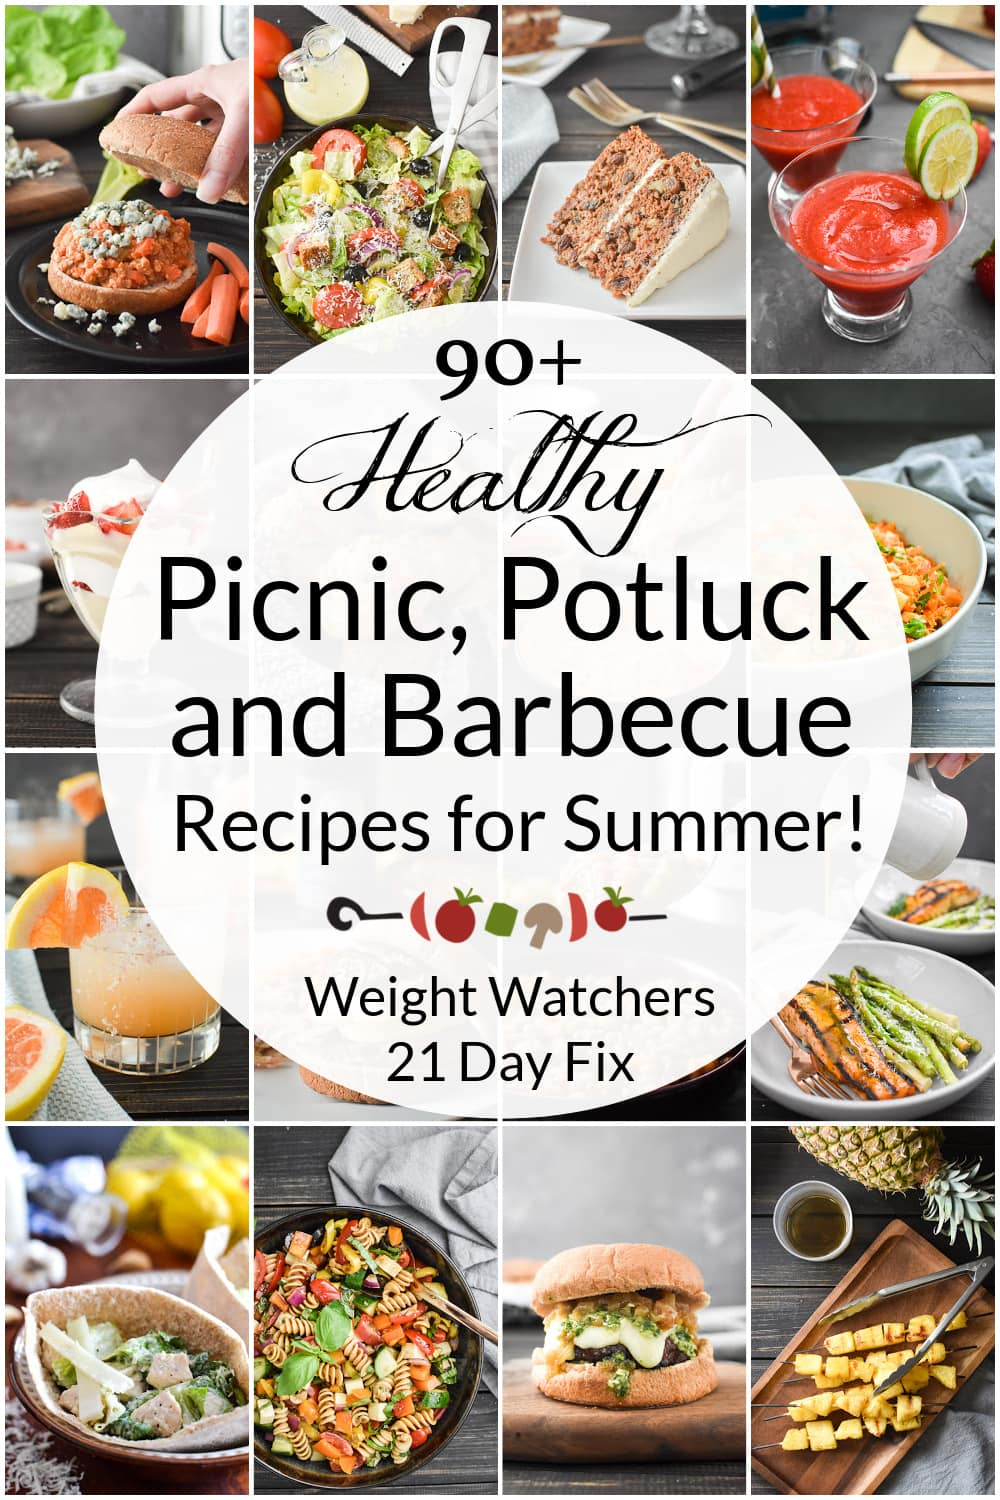 The BEST healthy 21 Day Fix Picnic, Potluck & Barbecue Recipes for all of your summer party needs! Includes main dishes, sides, snacks, drinks and desserts! Weight Watchers friendly, too! #21dayfix #healthy #summer #grill #grilling #picnic #potluck #weightwatchers #barbecue #kidfriendly #weightloss